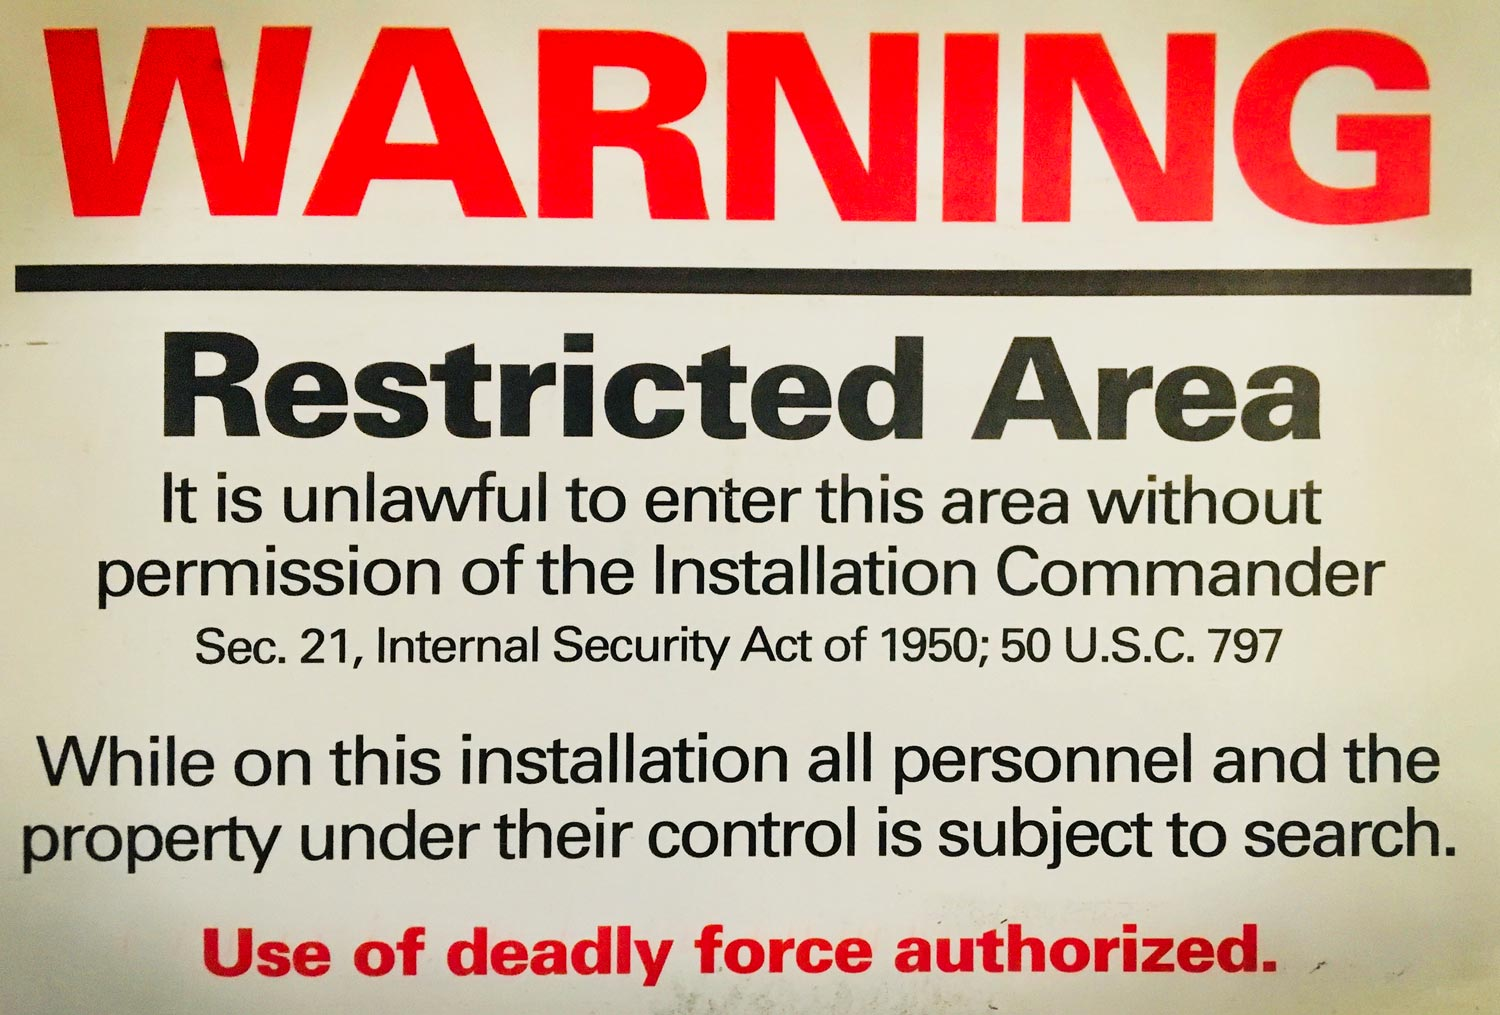 Warning sign from the Minuteman Missile National Historic Site, South Dakota